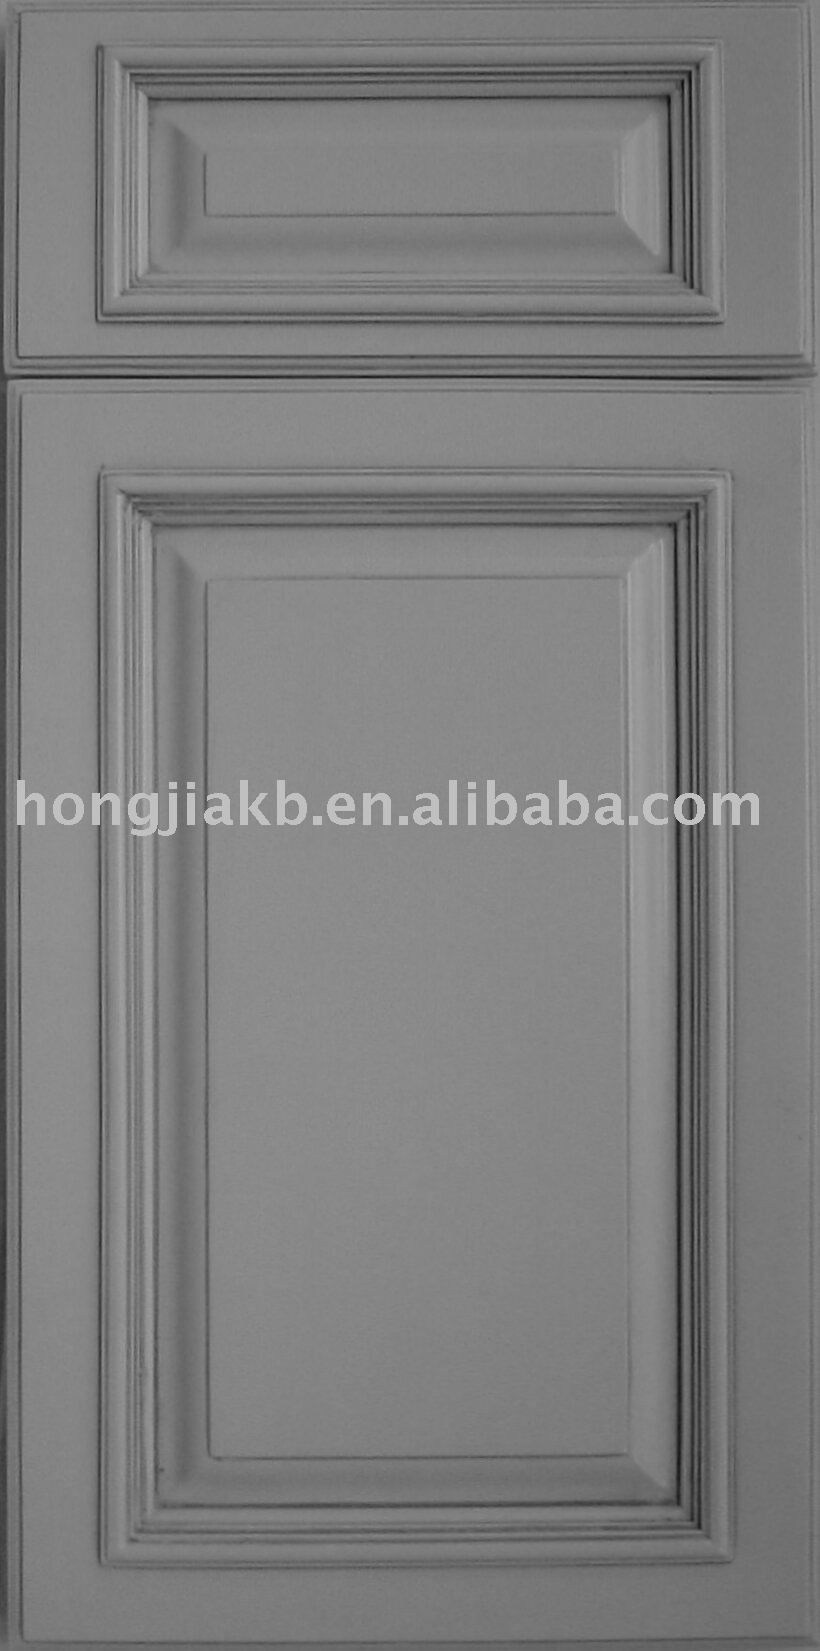 raised panel cabinet door white - Google Search | Built in ...